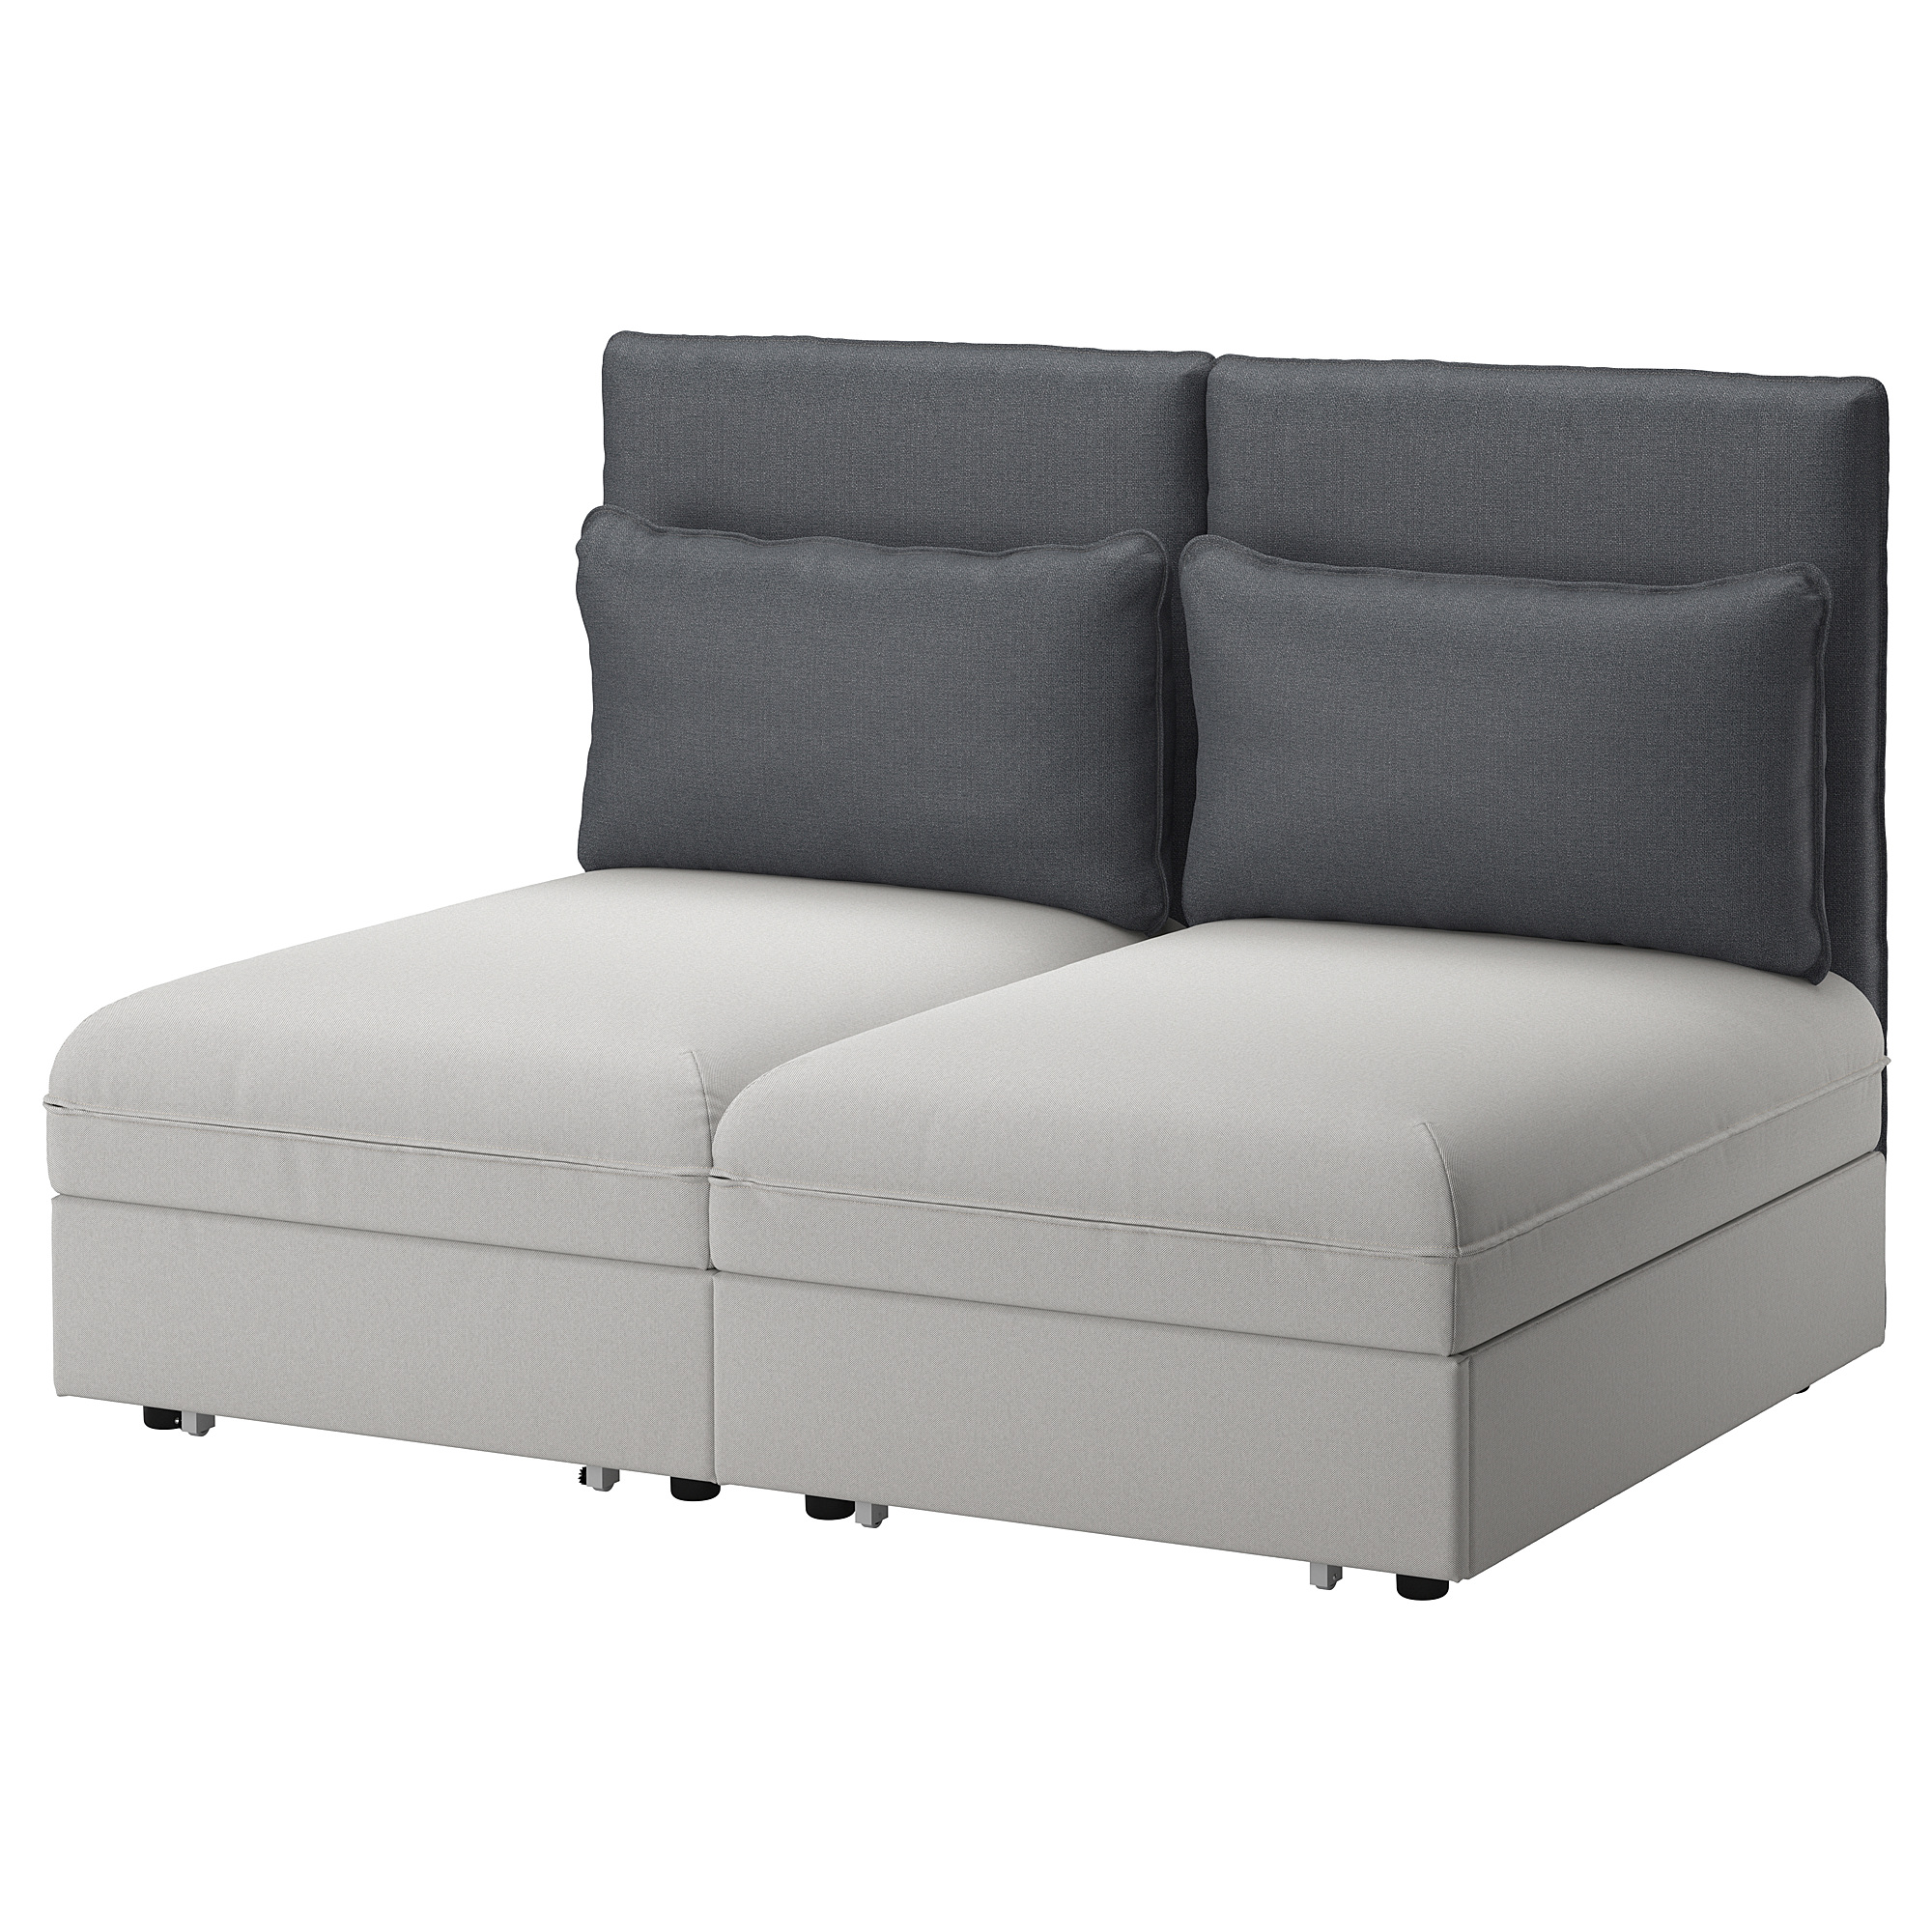 Sofa Beds & Futons IKEA